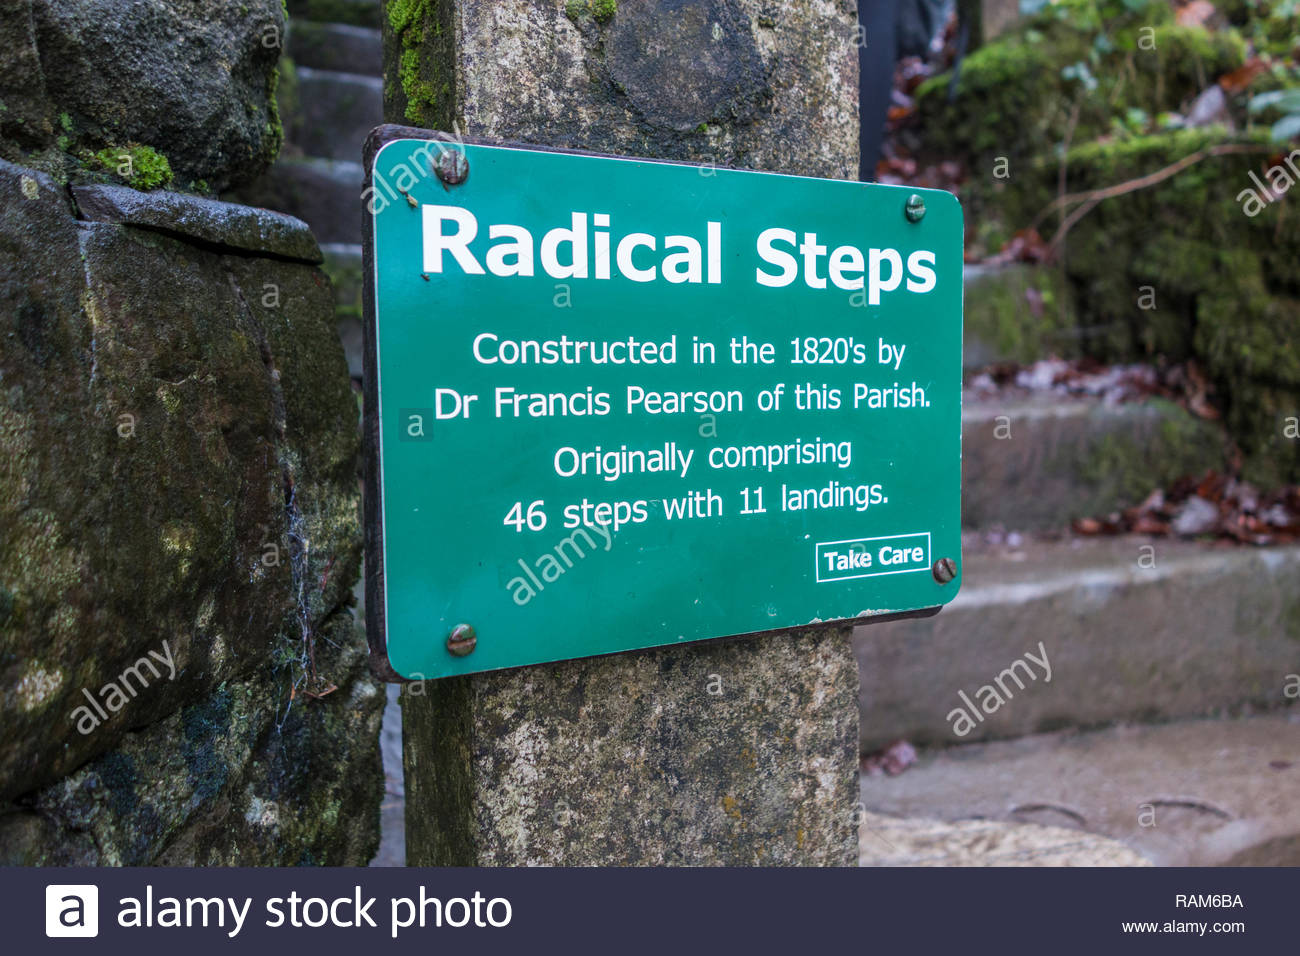 Sign for the Radical Steps in Kirkby Lonsdale, a small market town in South Lakeland, Cumbria, England, UK - Stock Image